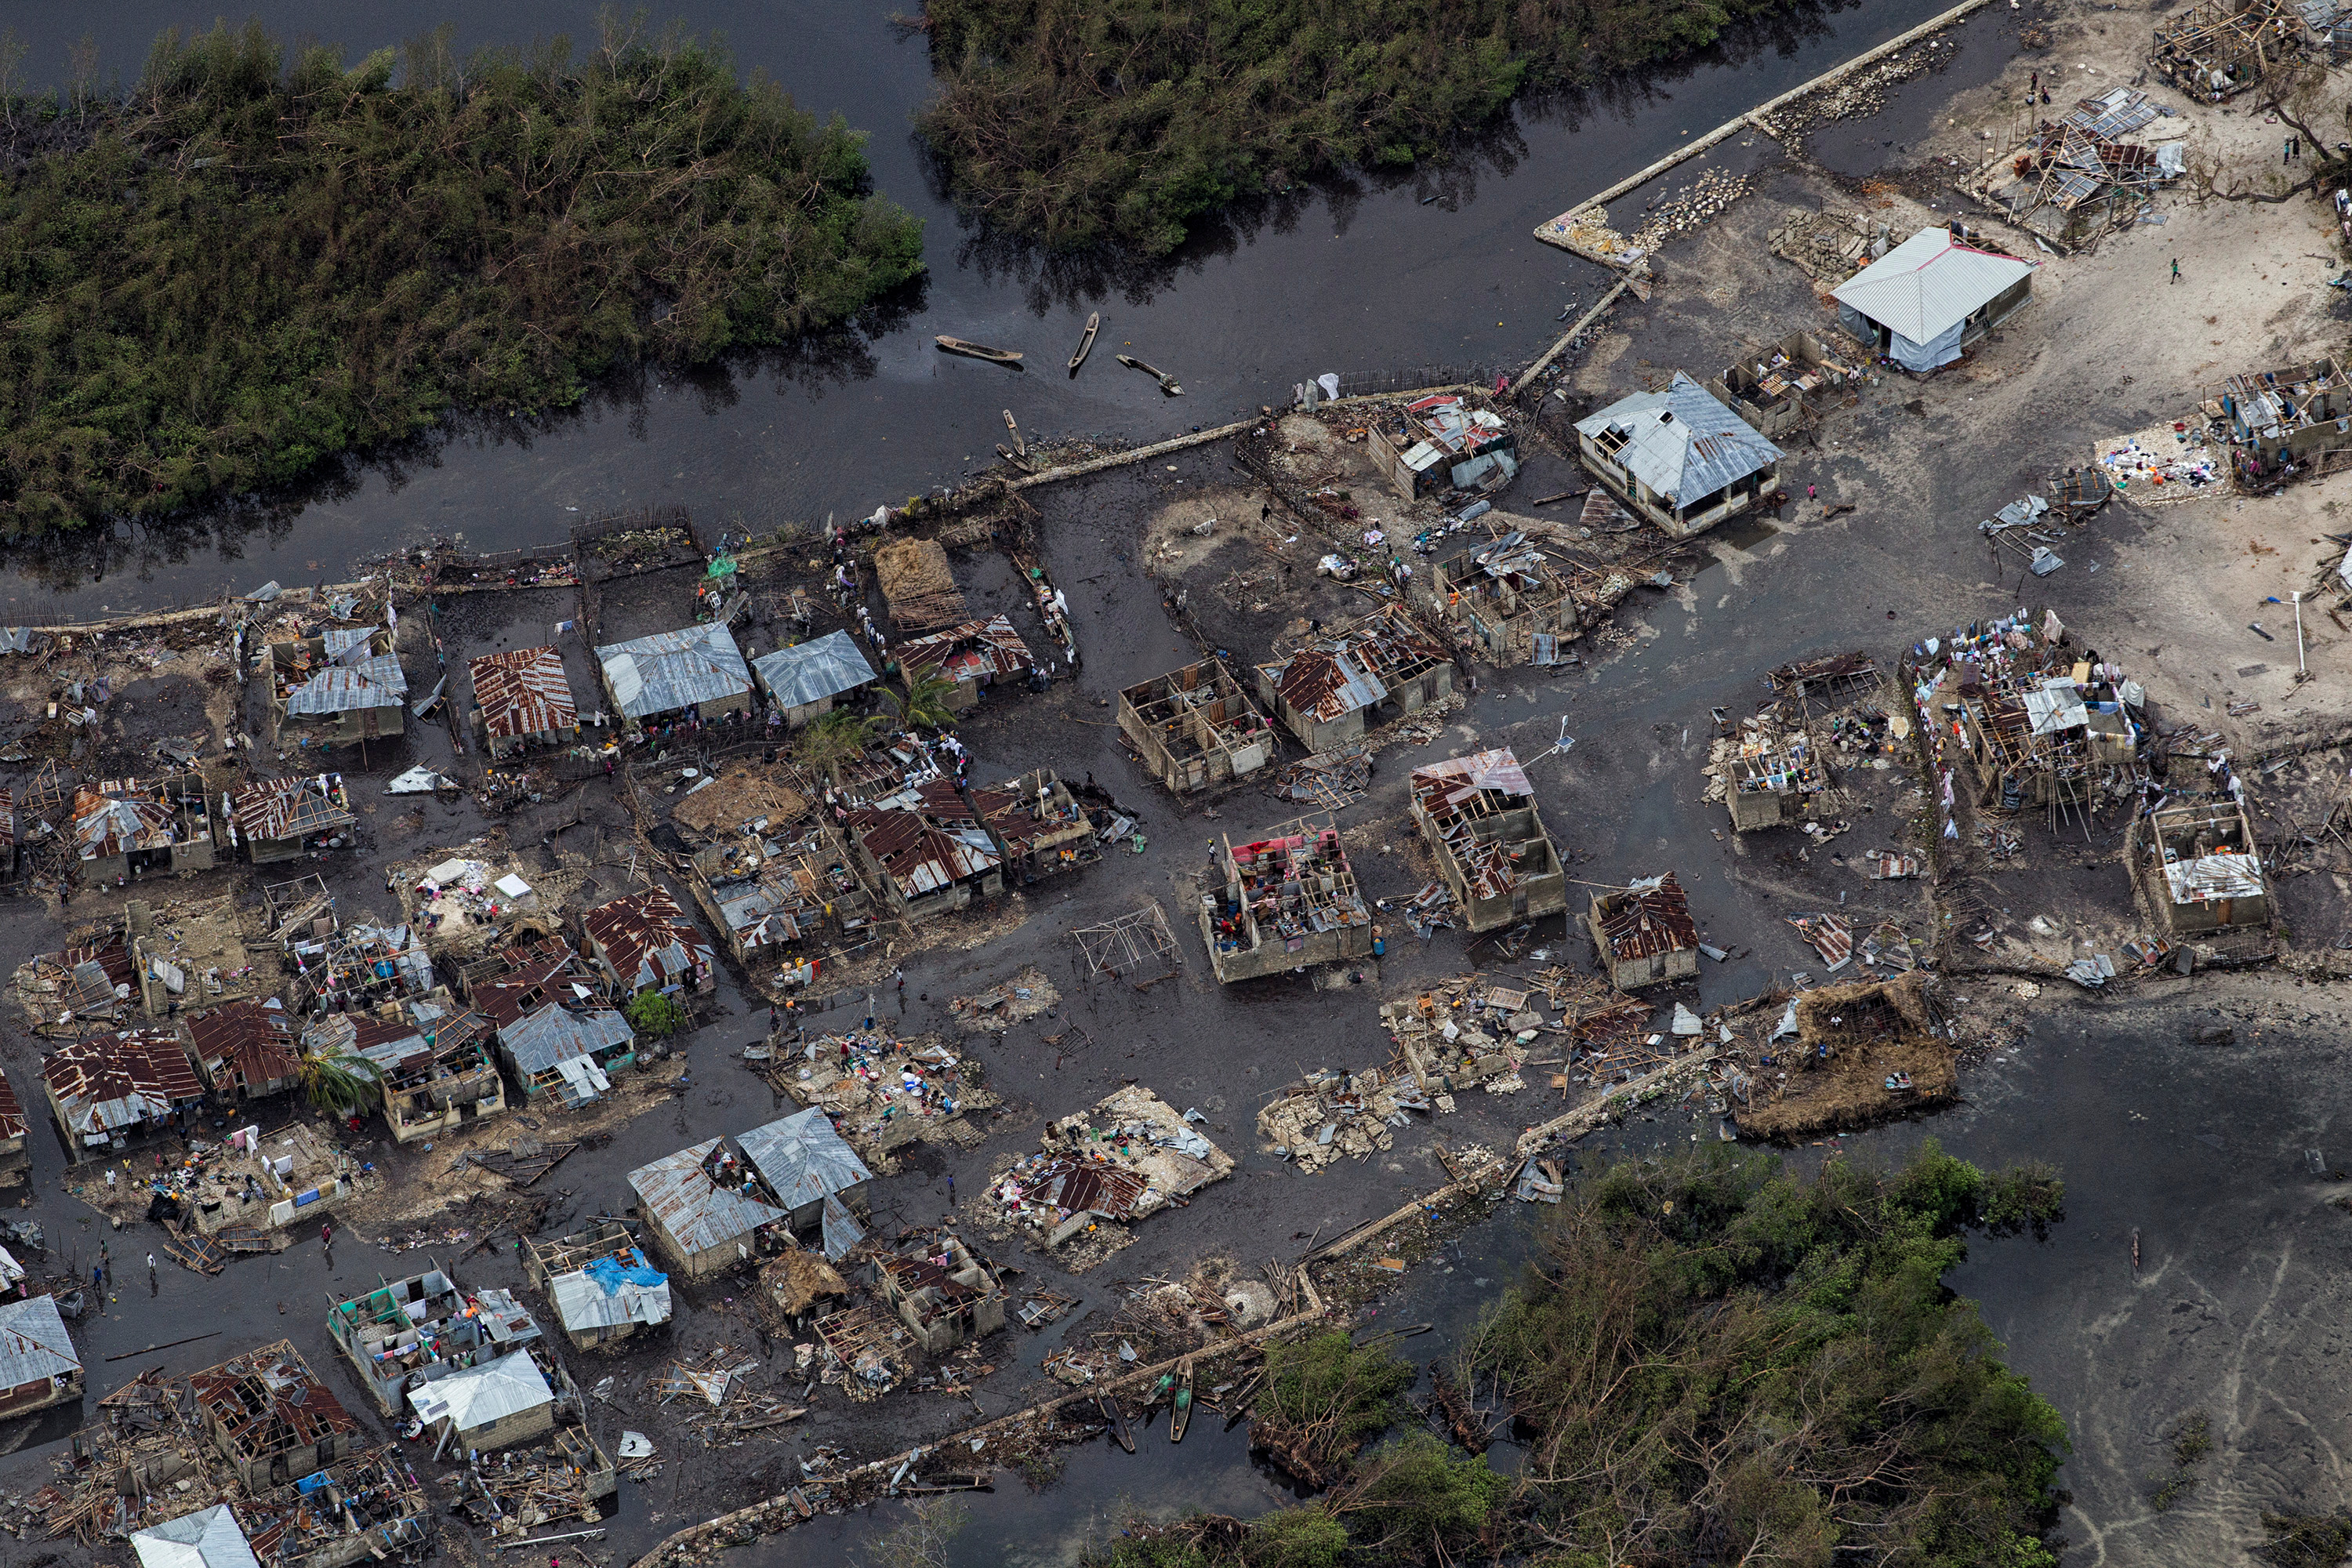 Damage from Hurricane Matthew is seen from the air along the west coast of Haiti, October 6, 2016. Picture taken October 6, 2016. Logan Abassi, courtesy of UN/MINUSTAH/Handout via REUTERS ATTENTION EDITORS - THIS IMAGE WAS PROVIDED BY A THIRD PARTY. EDITORIAL USE ONLY. NO RESALES. NO ARCHIVE. TPX IMAGES OF THE DAY - RTSRB4H